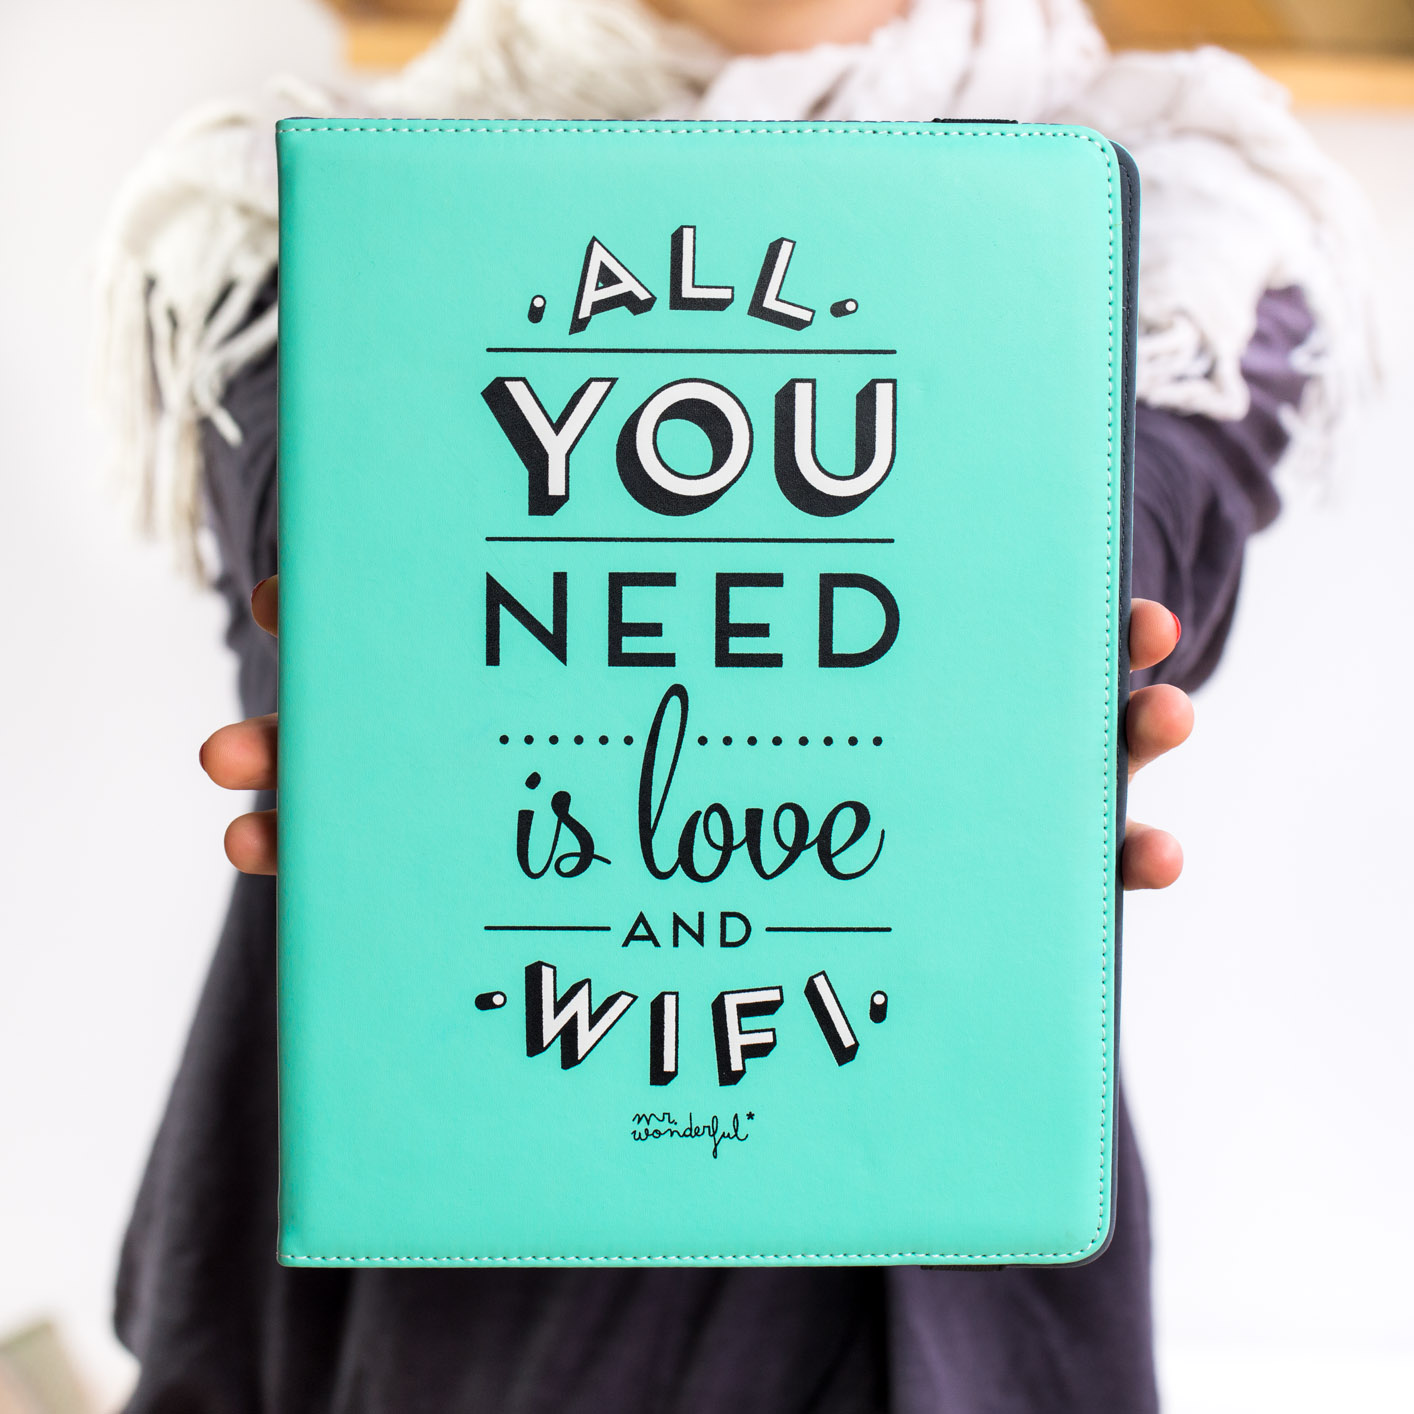 mrwonderful_MRUNI005_funda-verde-tablet-9,7-10,1_all-you-need-love-66